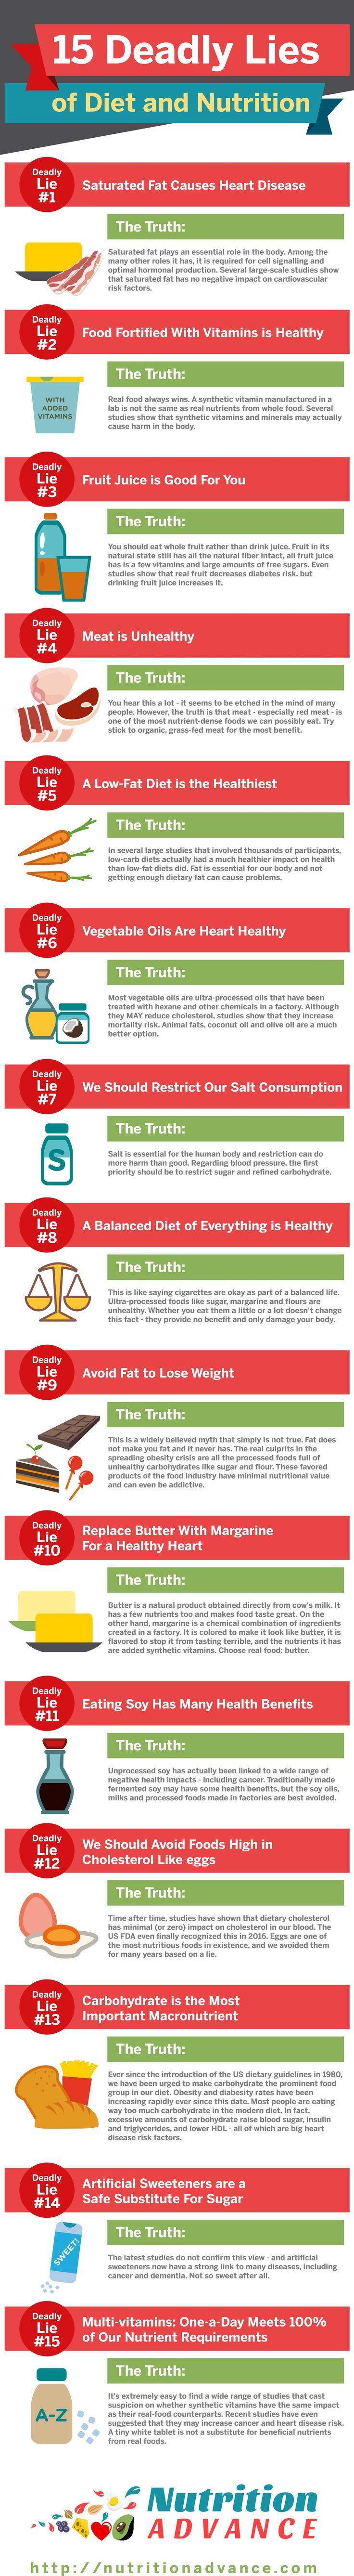 Here are some of the biggest lies, myths, and misconceptions about conventional nutrition ideas. Includes information on butter vs margarine, fruit juice, synthetic vitamins and other supplements, vegetable oils, saturated fat, sugar, weight, low-fat vs low-carb, cholesterol, meat, and more.